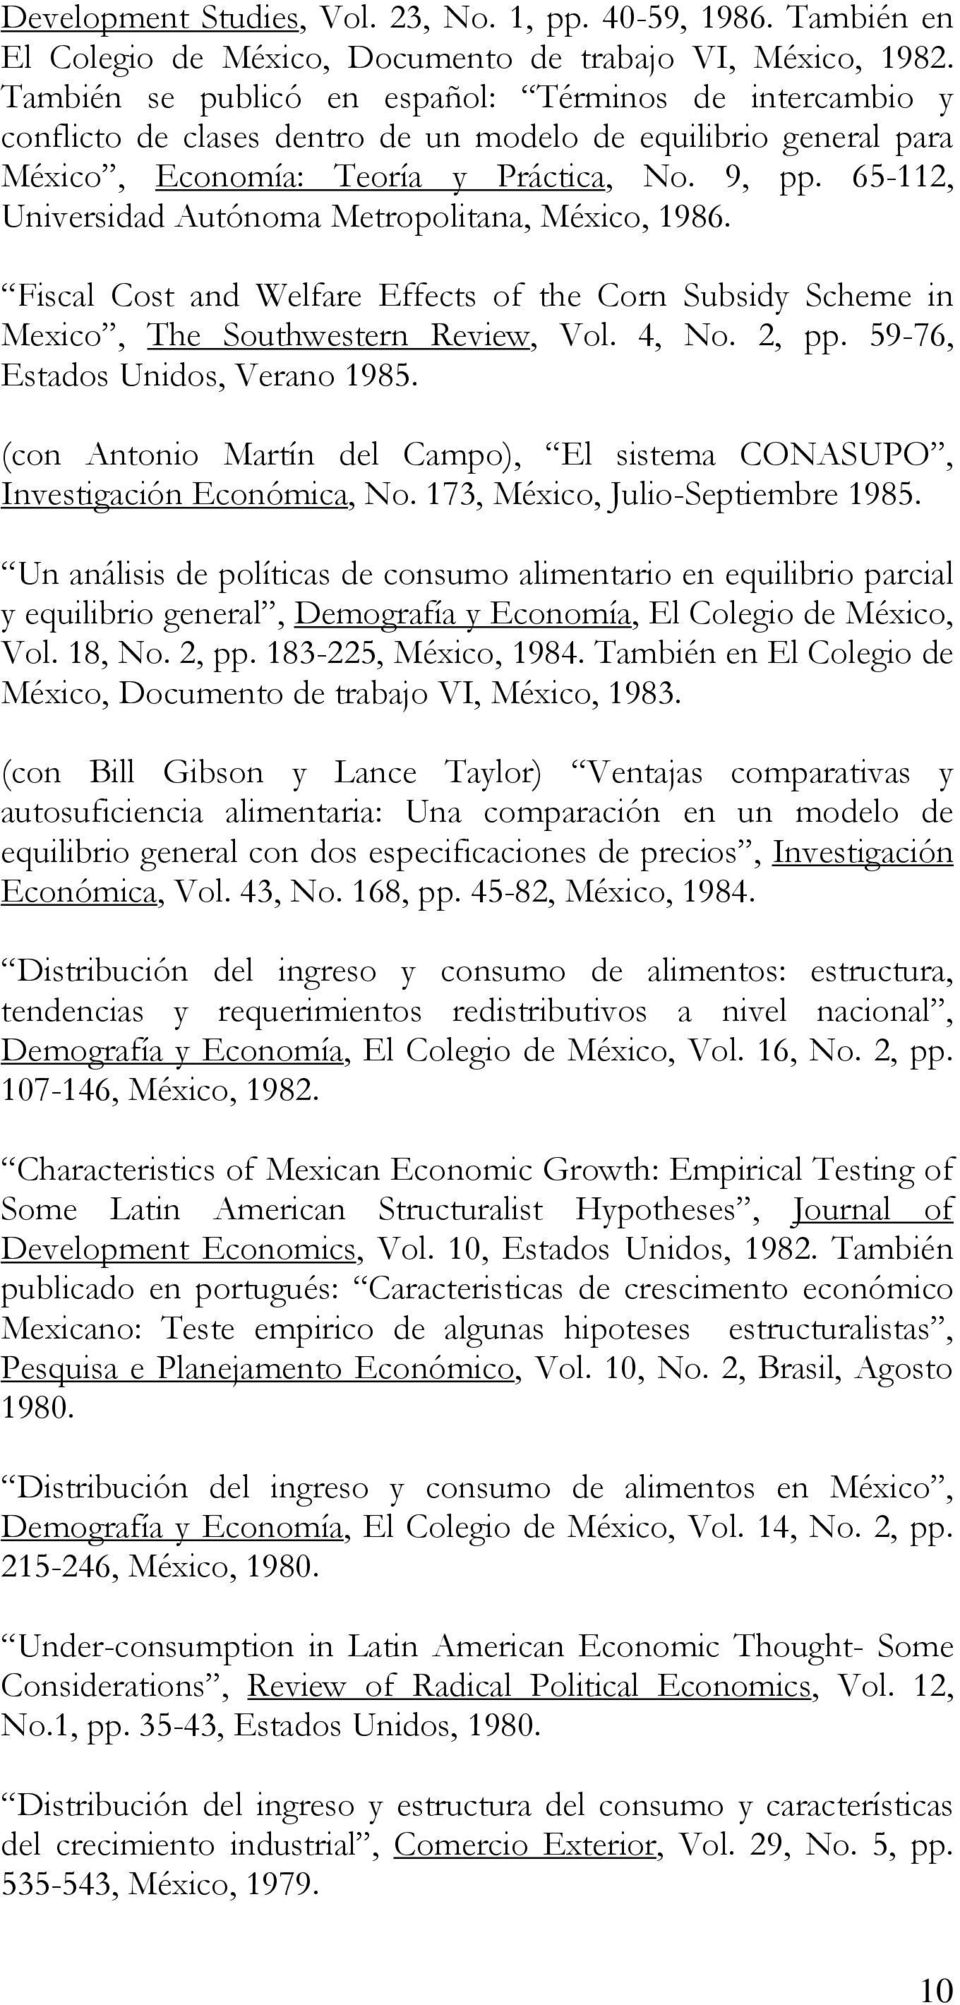 65-112, Universidad Autónoma Metropolitana, México, 1986. Fiscal Cost and Welfare Effects of the Corn Subsidy Scheme in Mexico, The Southwestern Review, Vol. 4, No. 2, pp.